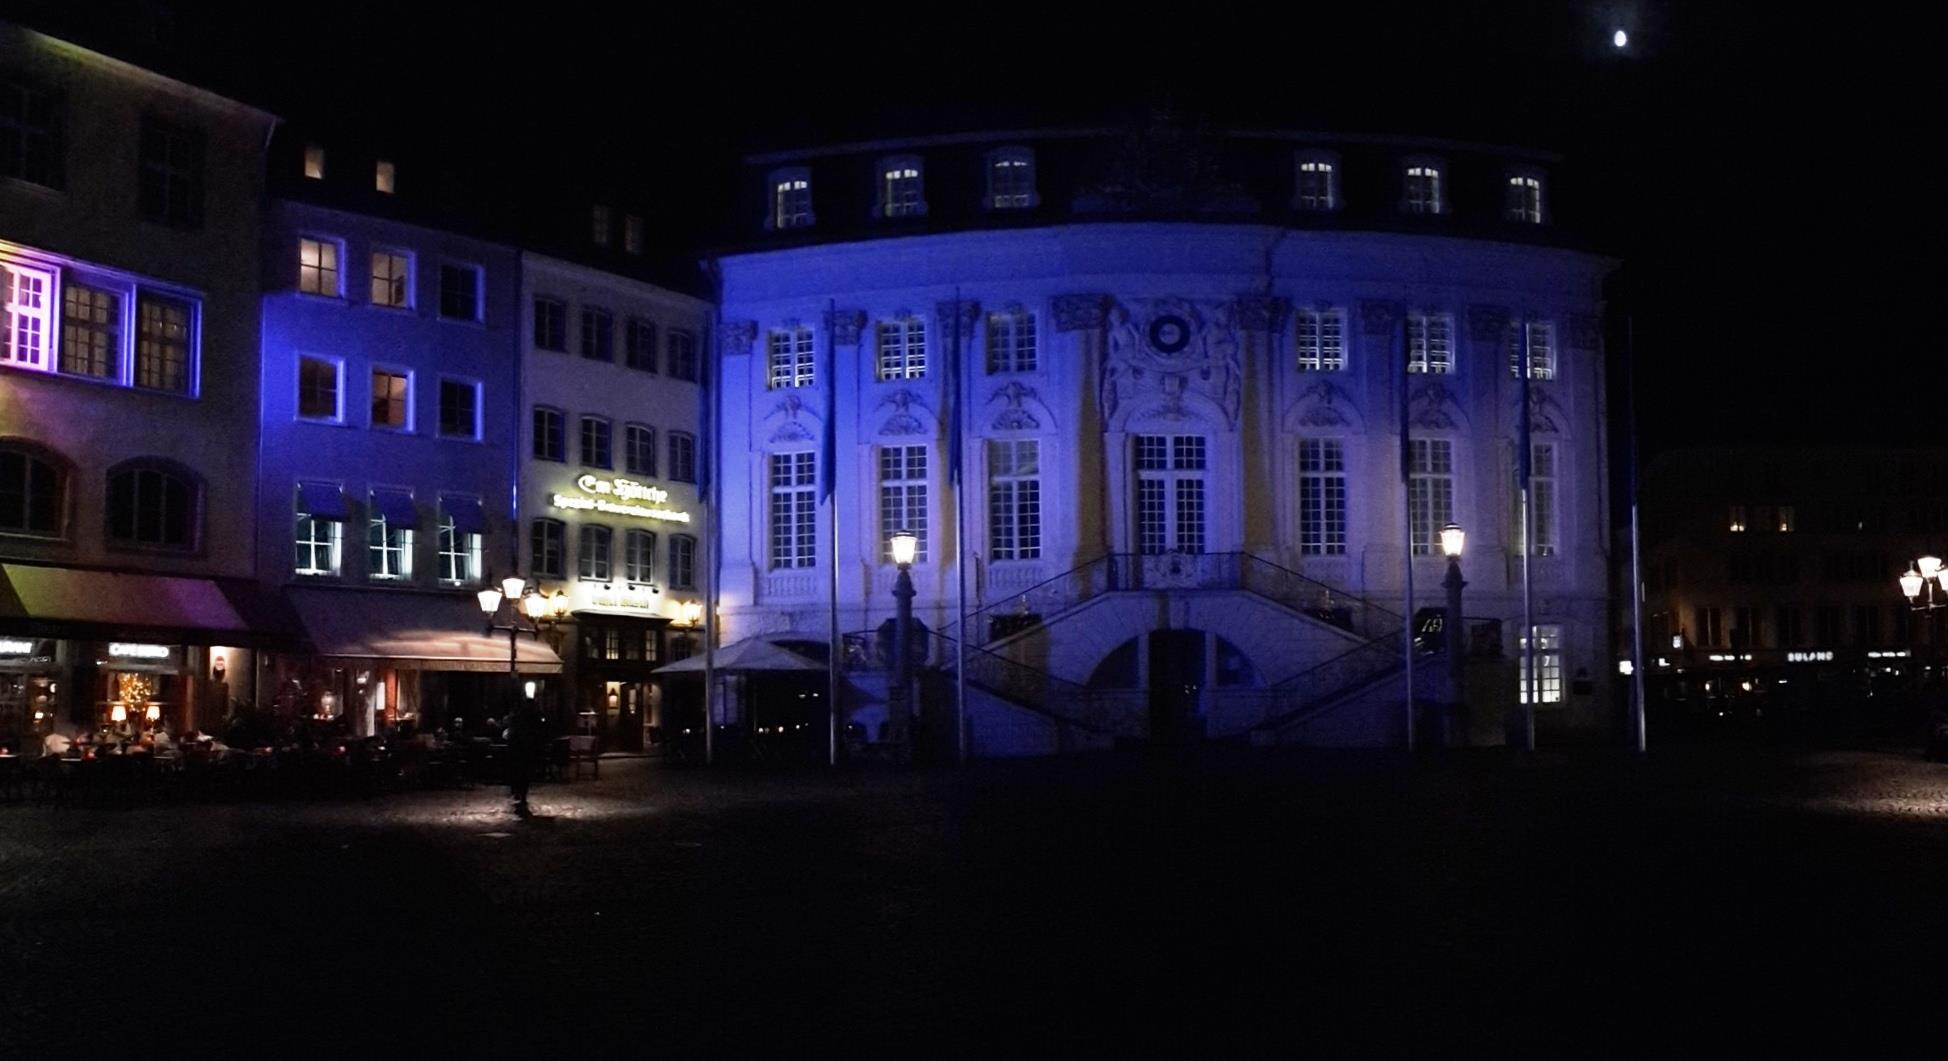 Bonn Buildings Will Be Lit up in Blue